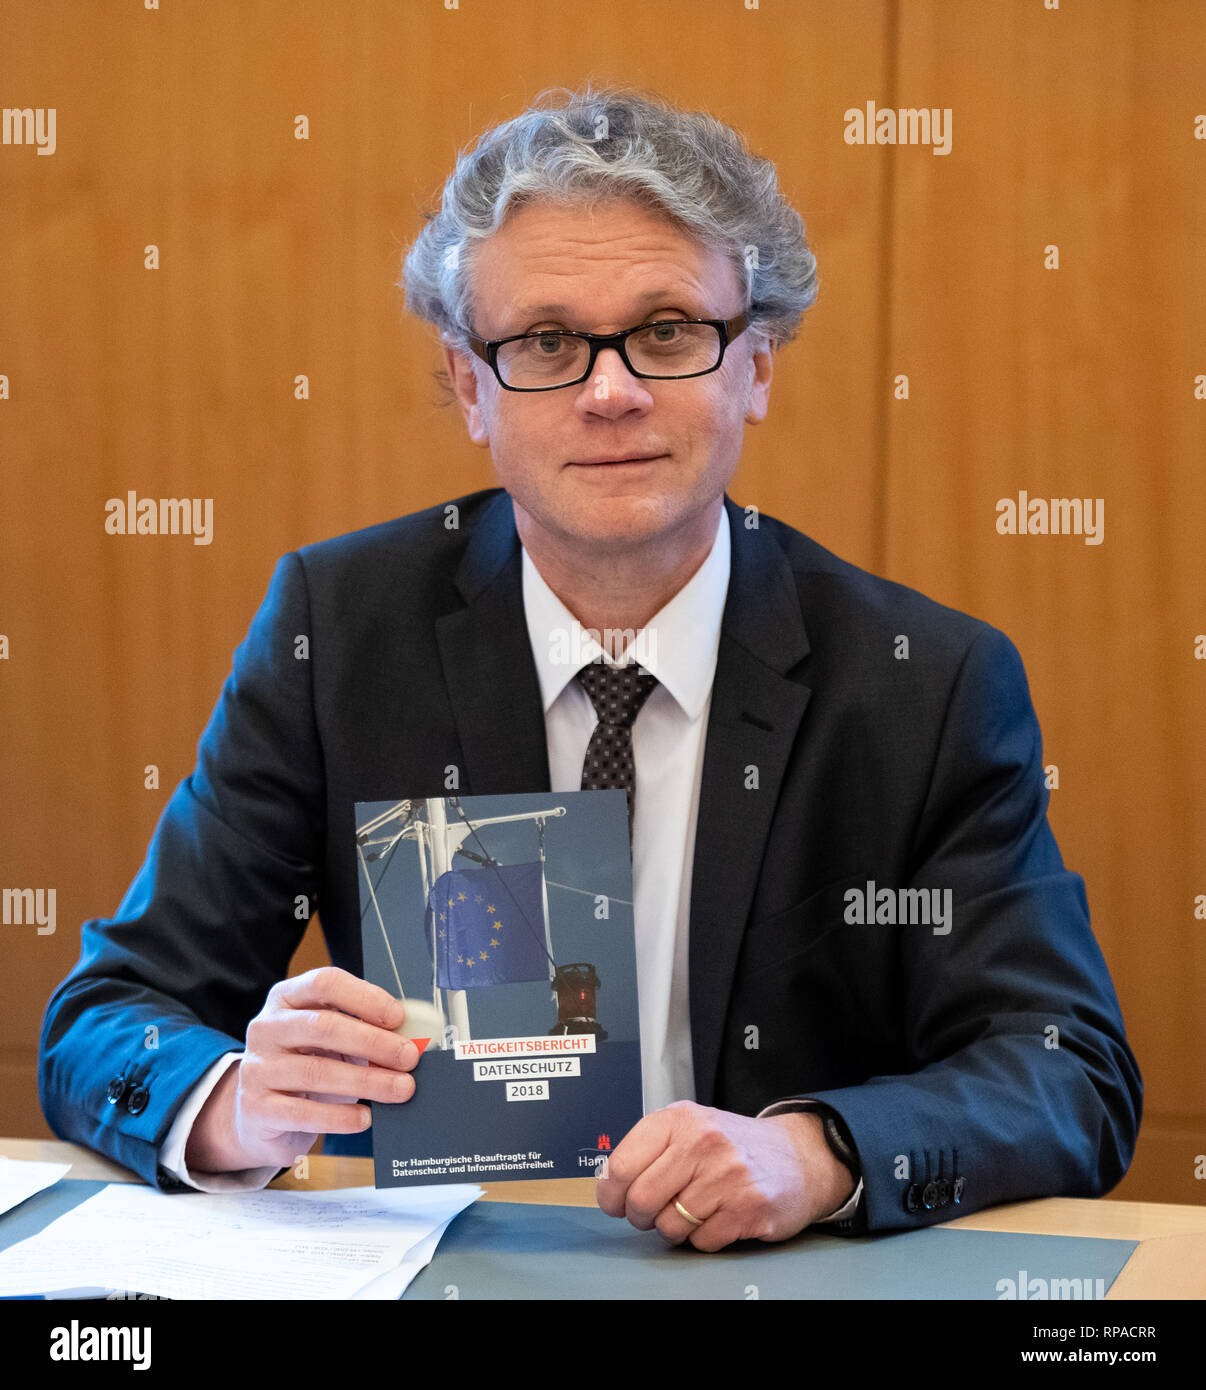 Hamburg, Germany. 21st Feb, 2019. Johannes Caspar, Hamburg Commissioner for Data Protection, presents the Activity Report 2018 at a press conference in the City Hall. (to dpa 'Hamburg's data protection commissioners plague personnel worries') Credit: Daniel Reinhardt/dpa/Alamy Live News - Stock Image